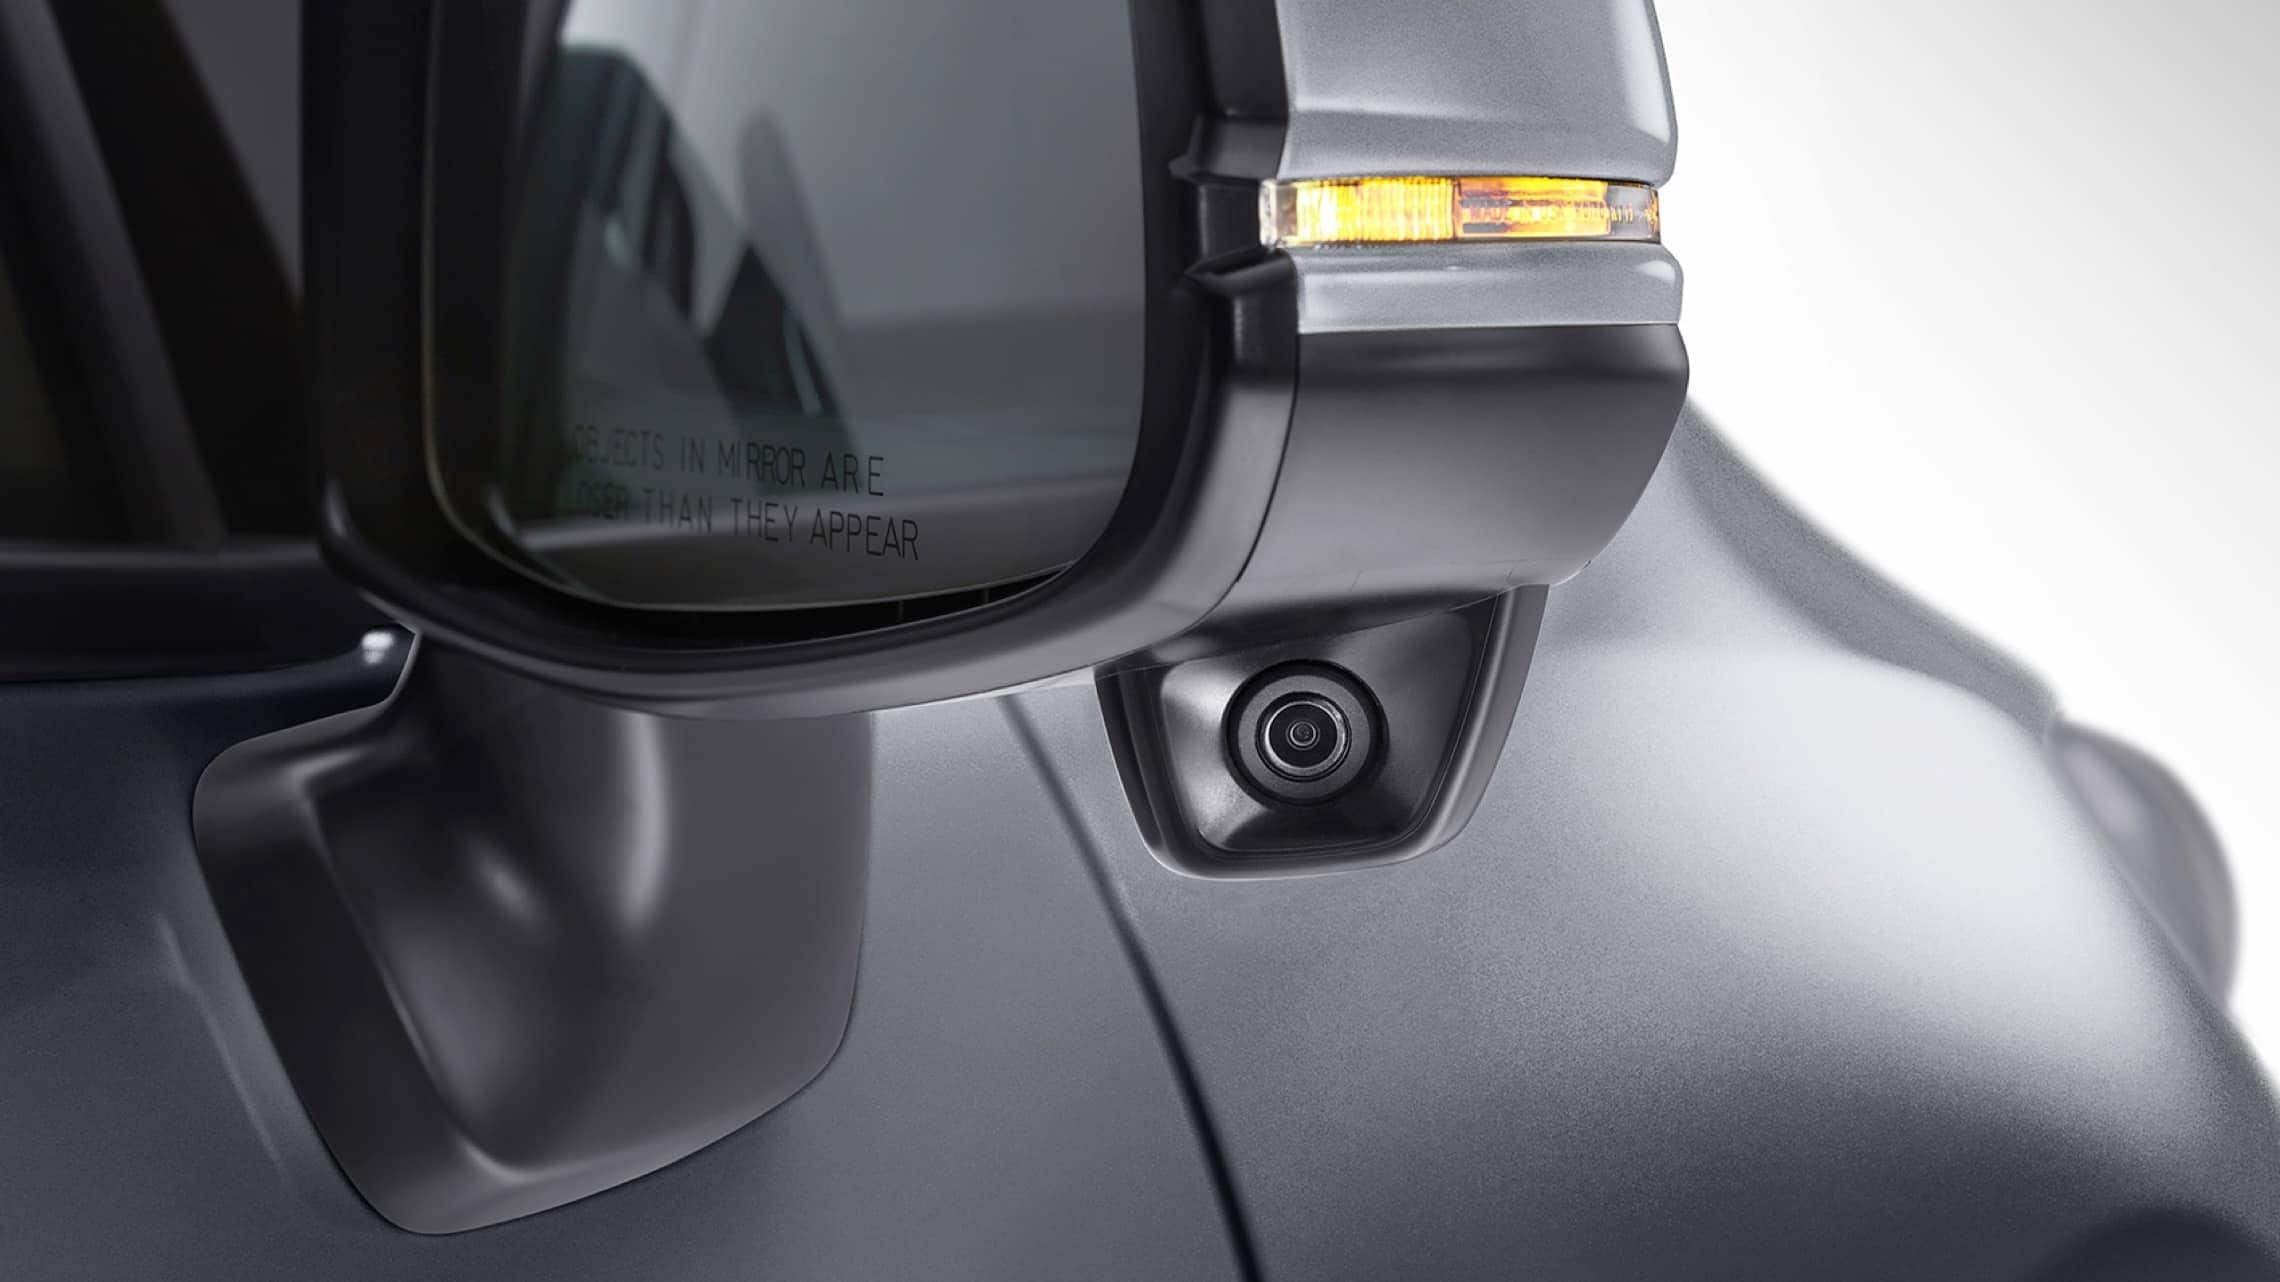 Exterior close up view of Honda LaneWatch™ feature on passenger side mirror on 2019 Honda Fit EX-L.